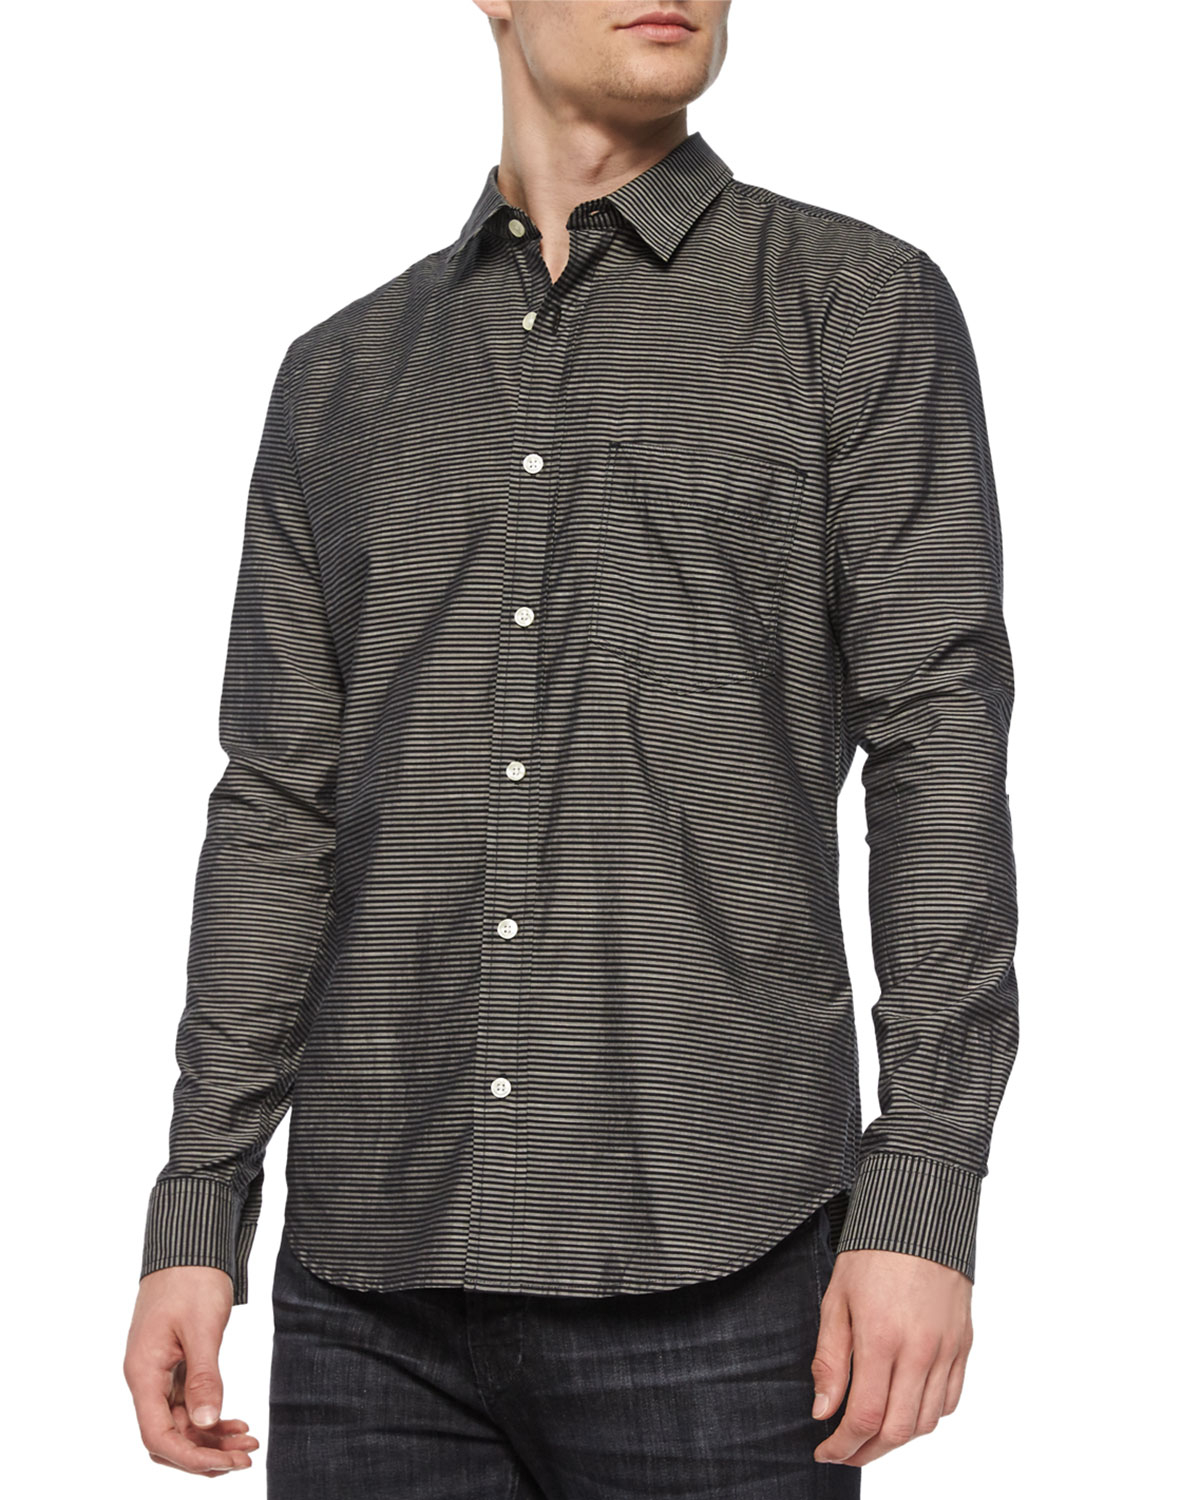 Lyst 7 for all mankind horizontal striped long sleeve for Horizontal striped dress shirts men